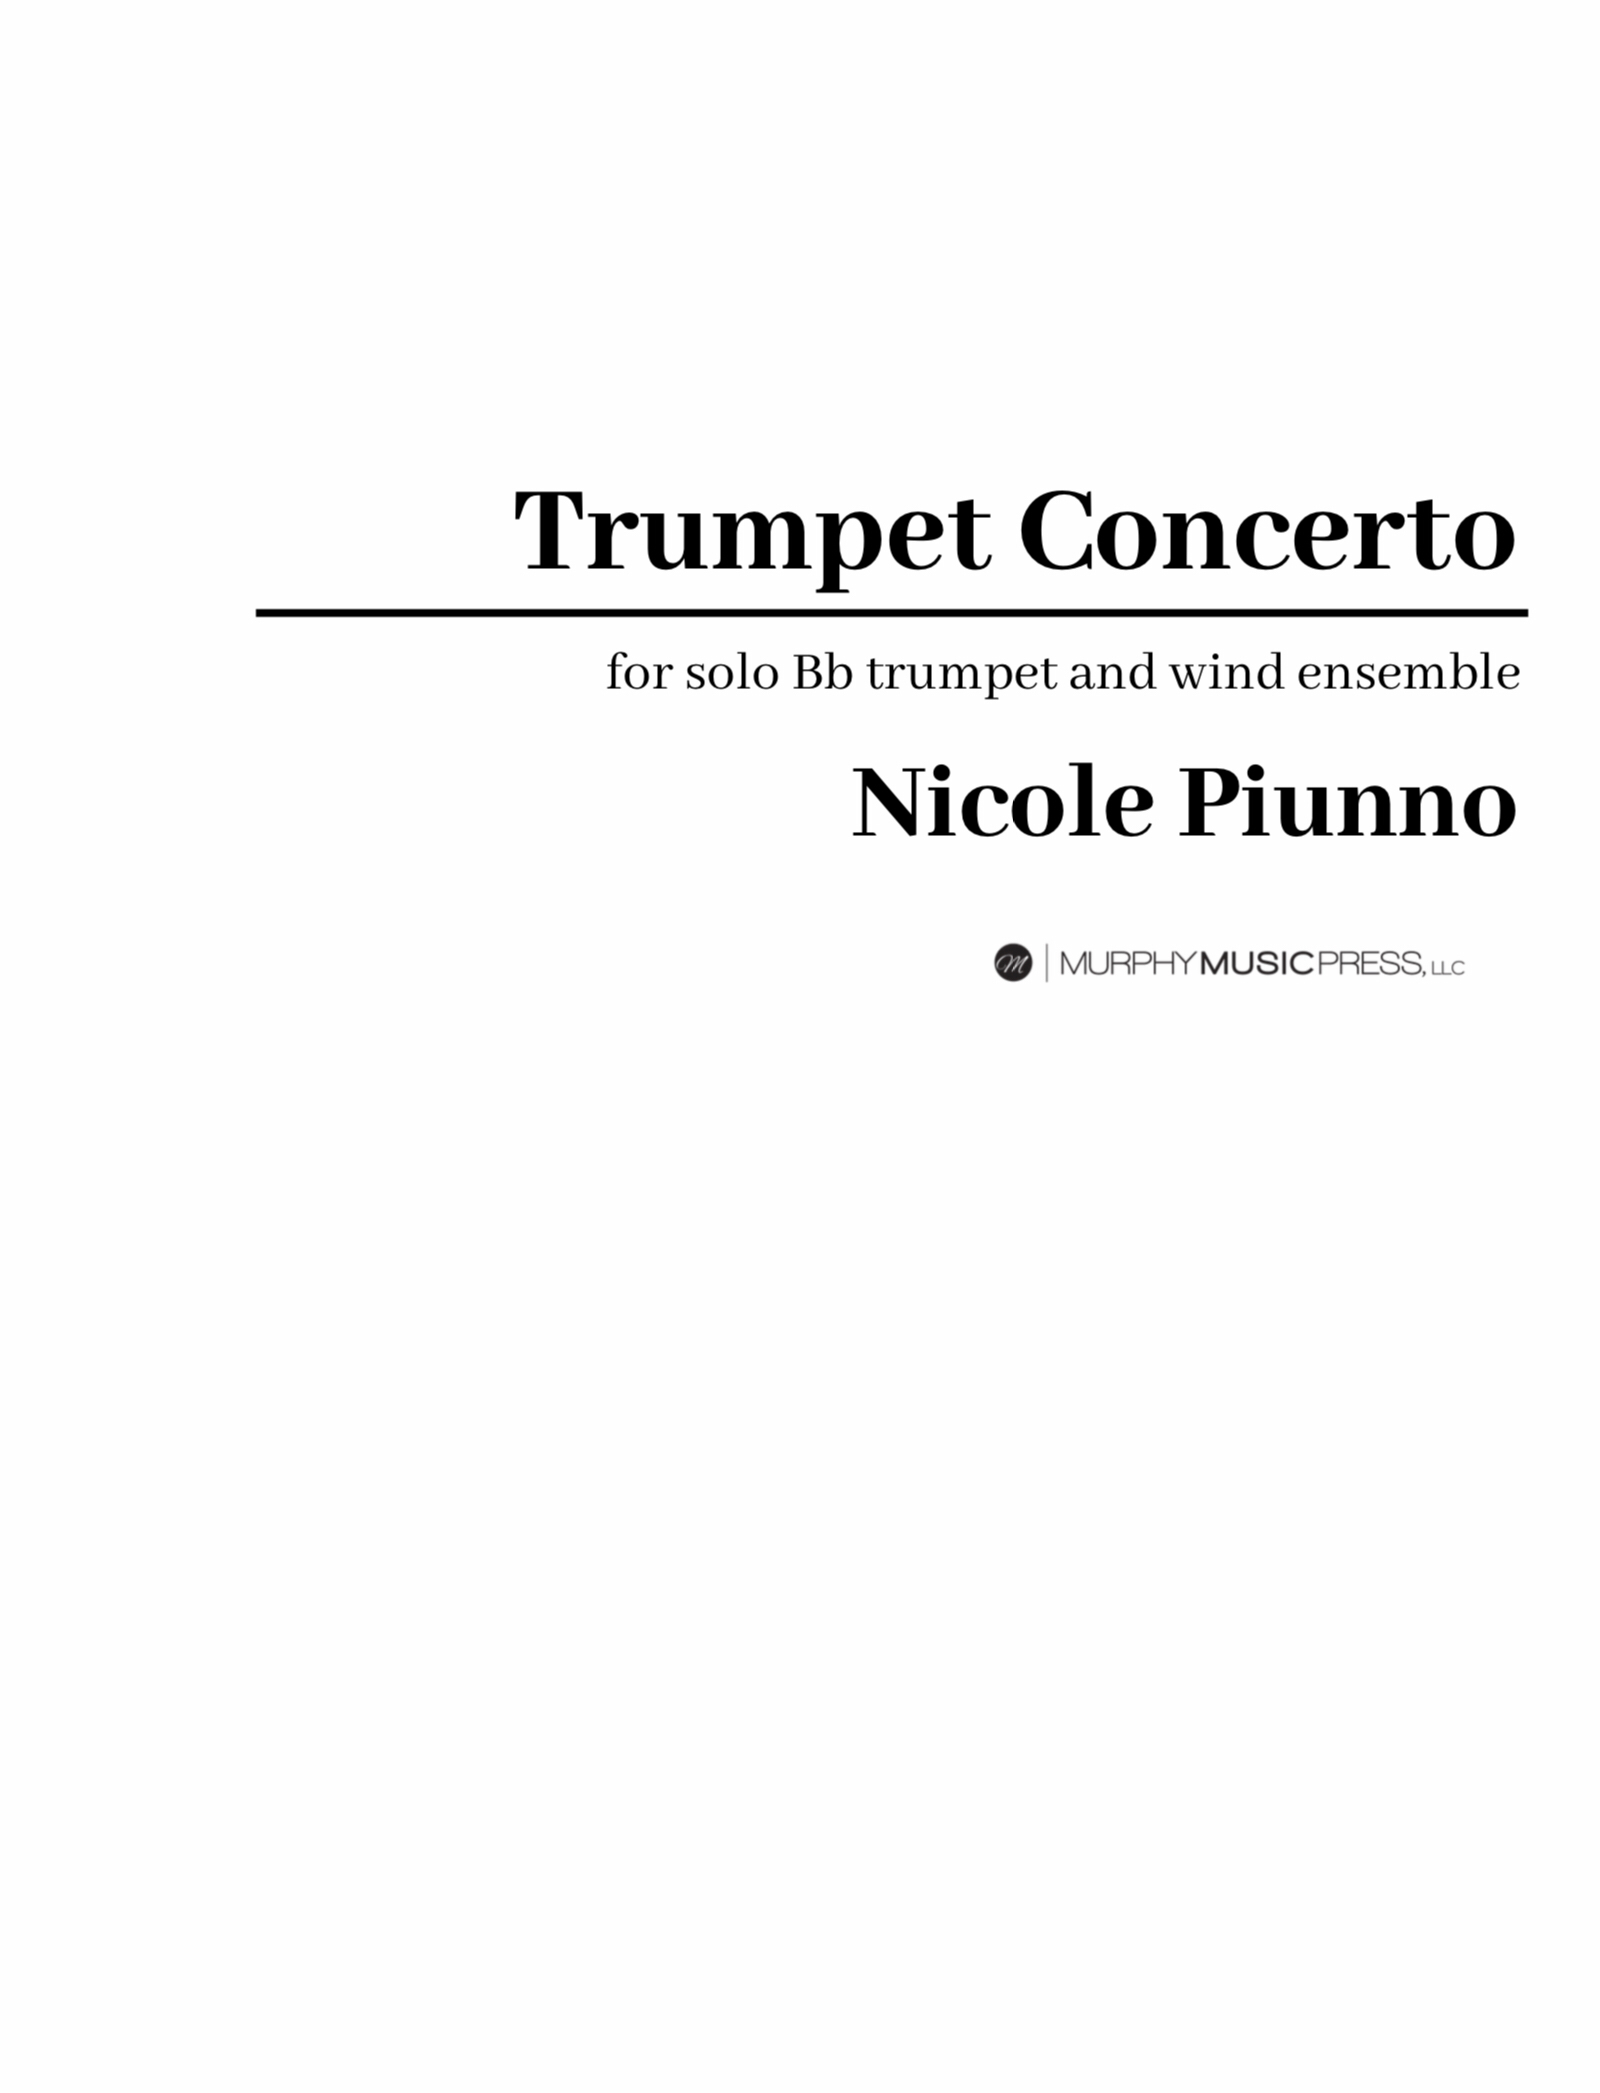 Concerto For Trumpet And Wind Ensemble by Nicole Piunno